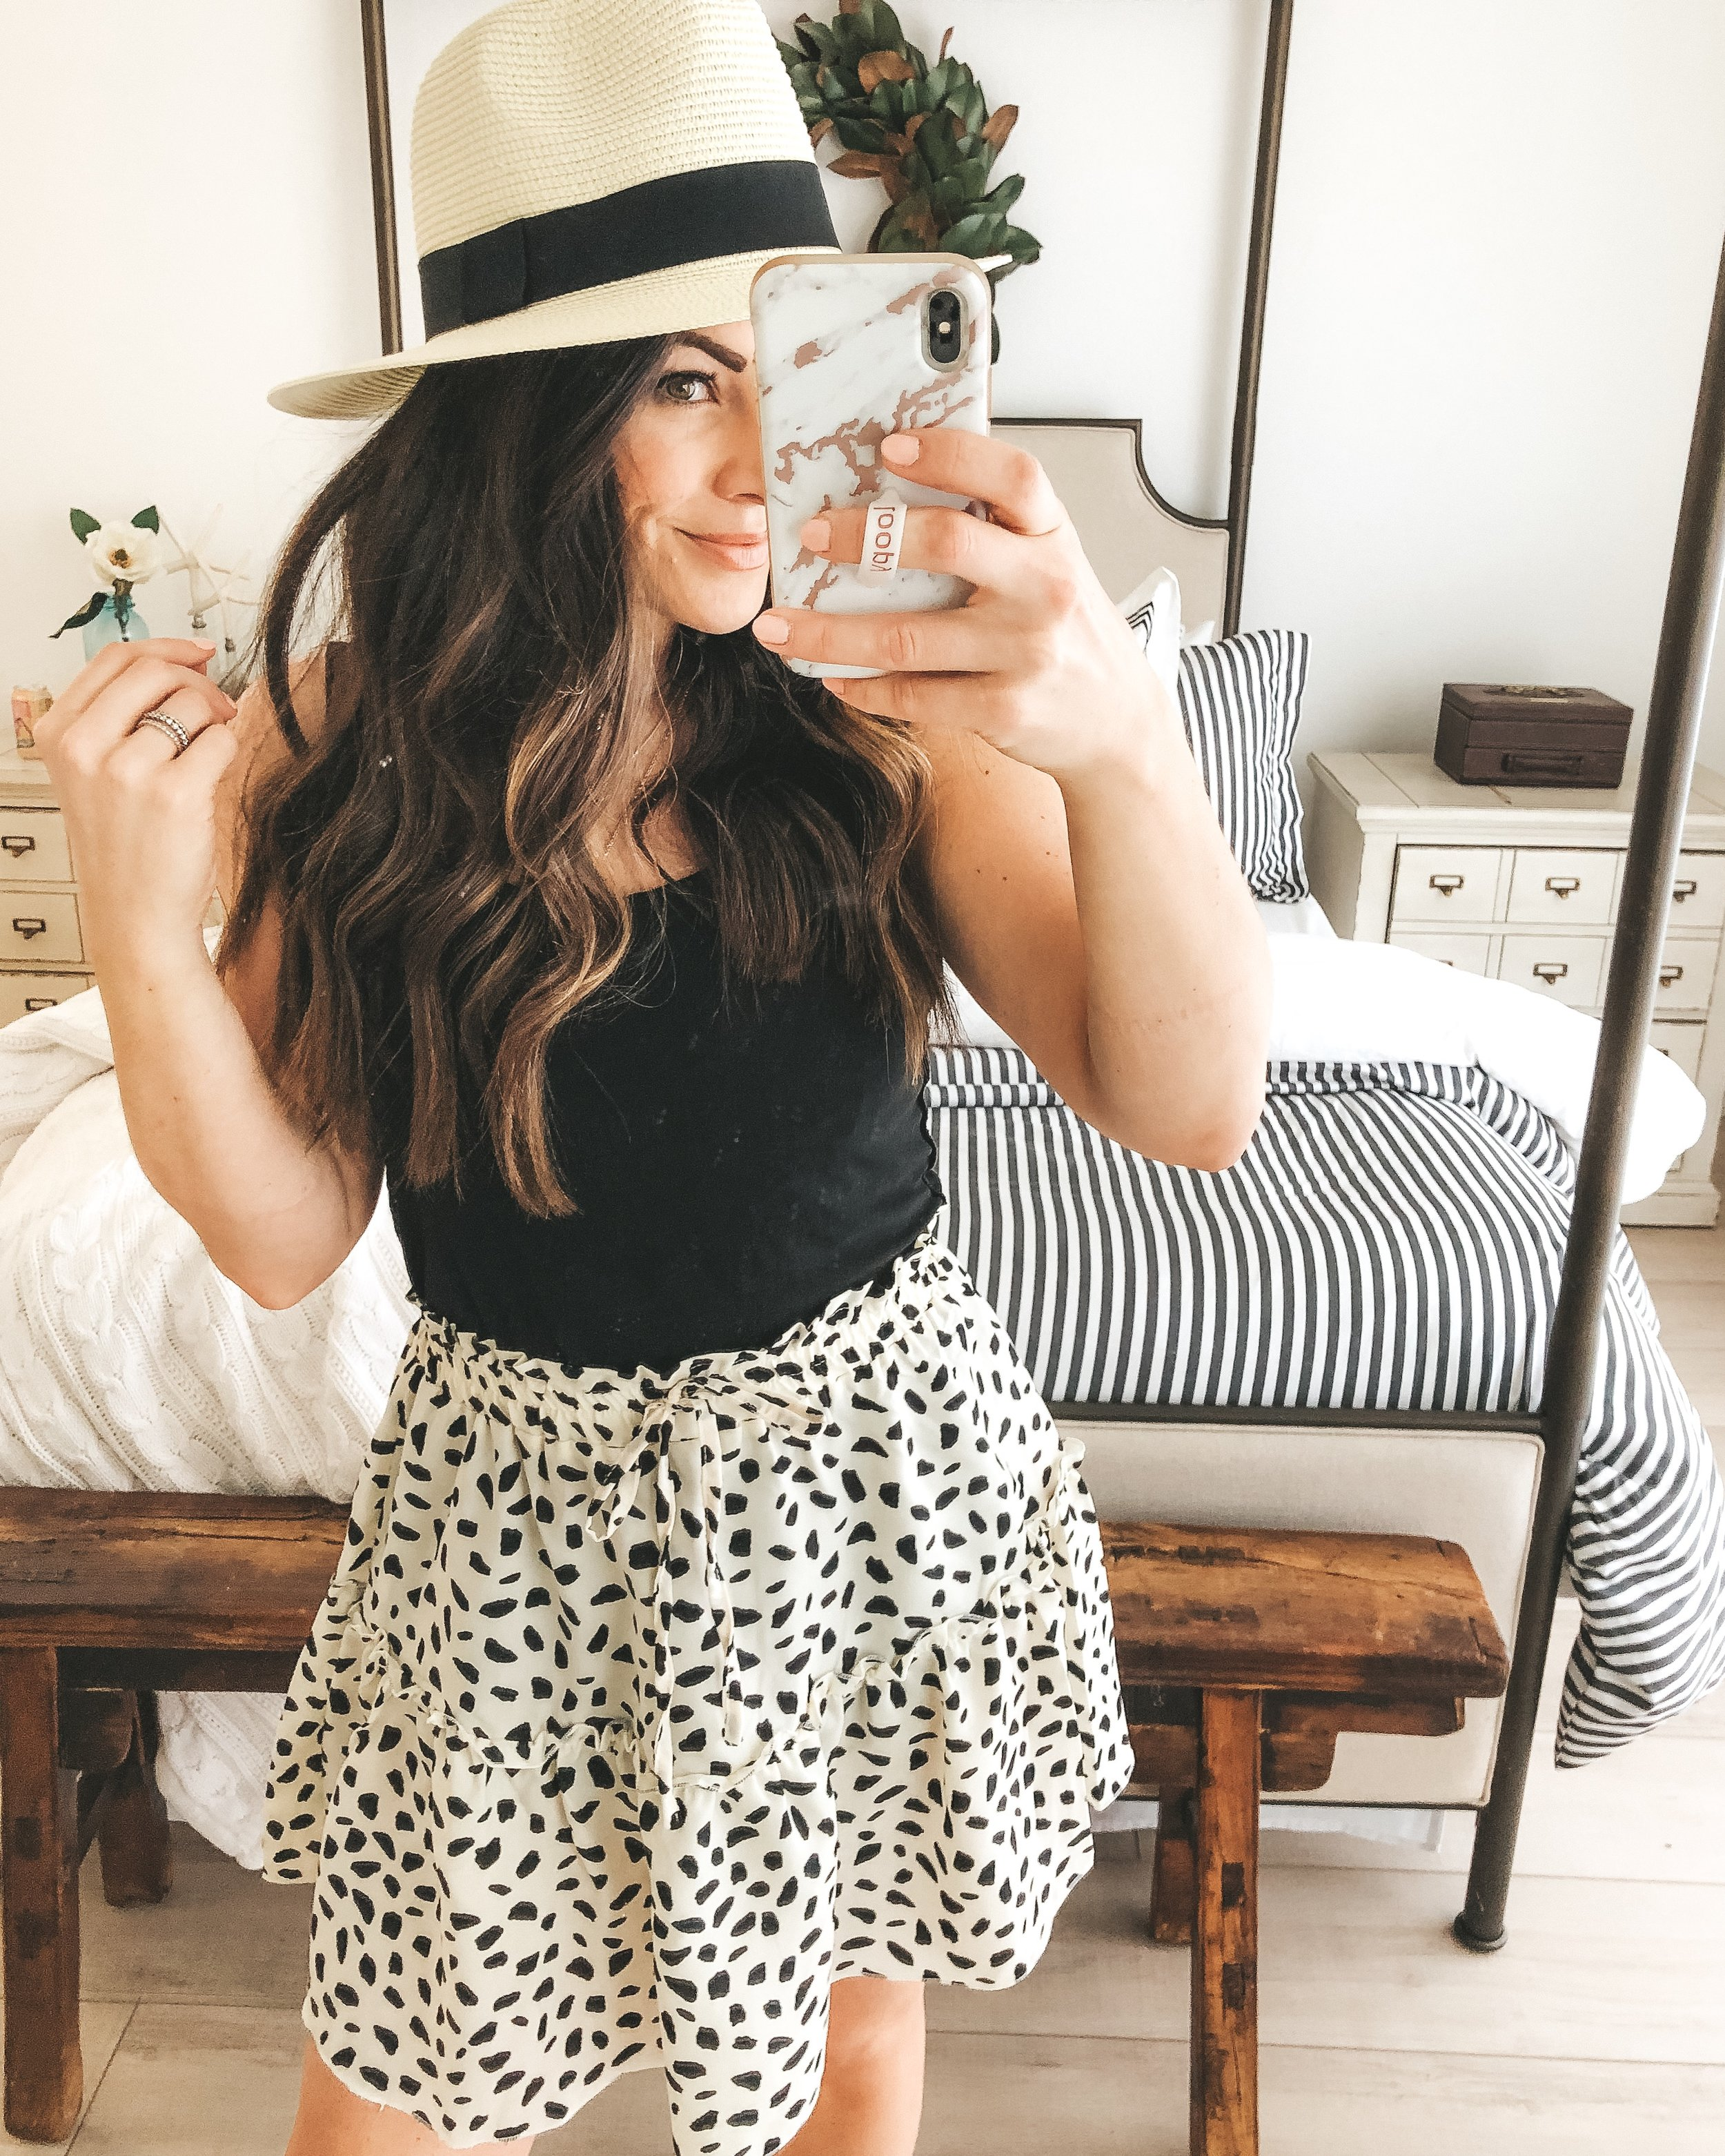 Affordable spring style from Amazon.  Amazon fashion finds.  Amazon prime fashion. Leopard print skirt with Free People Adella bralette and black bodysuit.